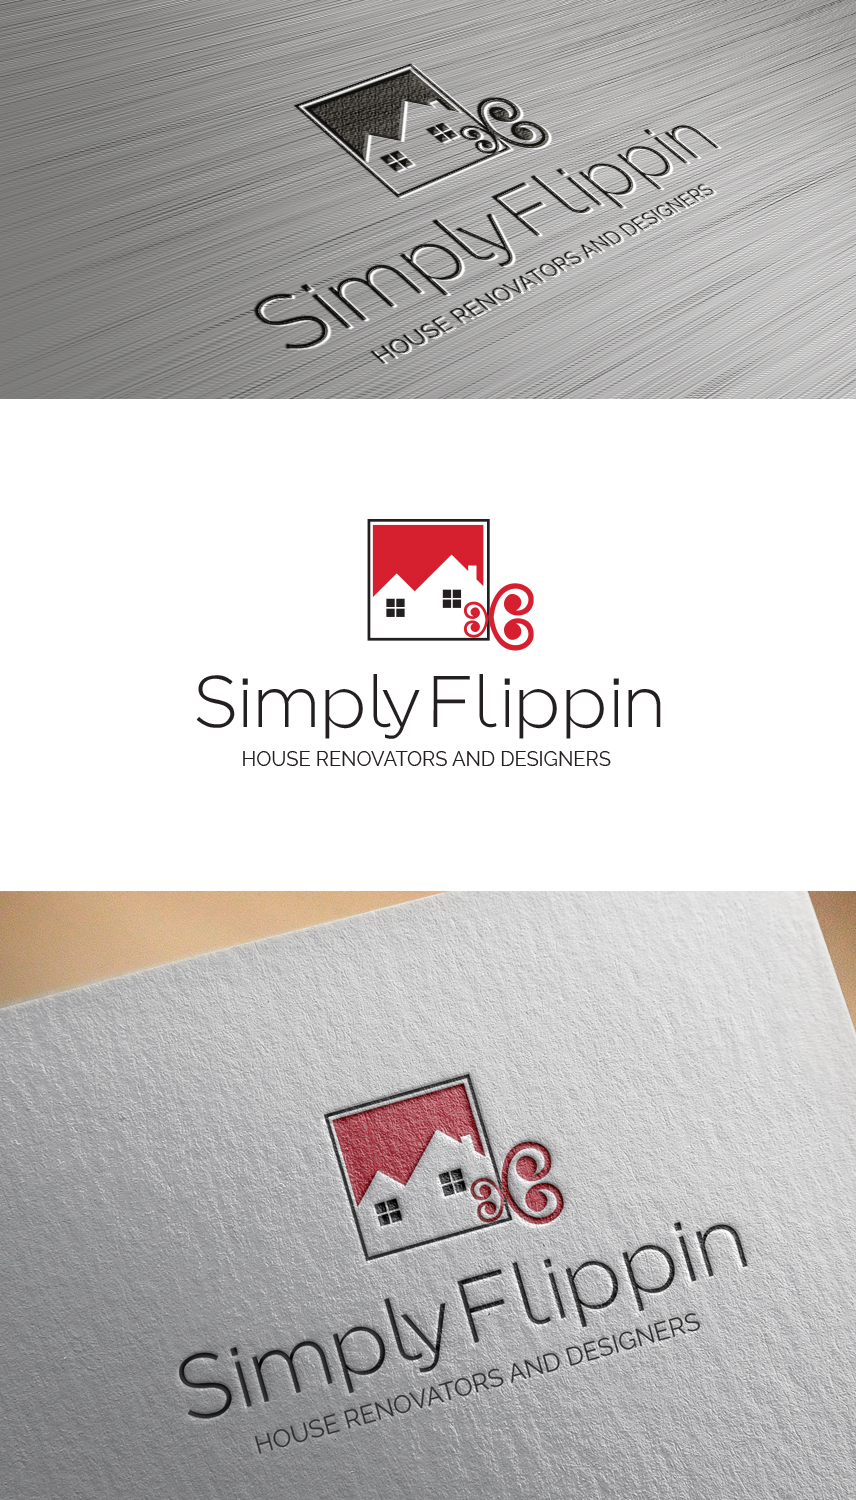 Business logo design for simply flippin by uk design 17453544 business logo design for samu studios inc in united states design 17453544 reheart Choice Image